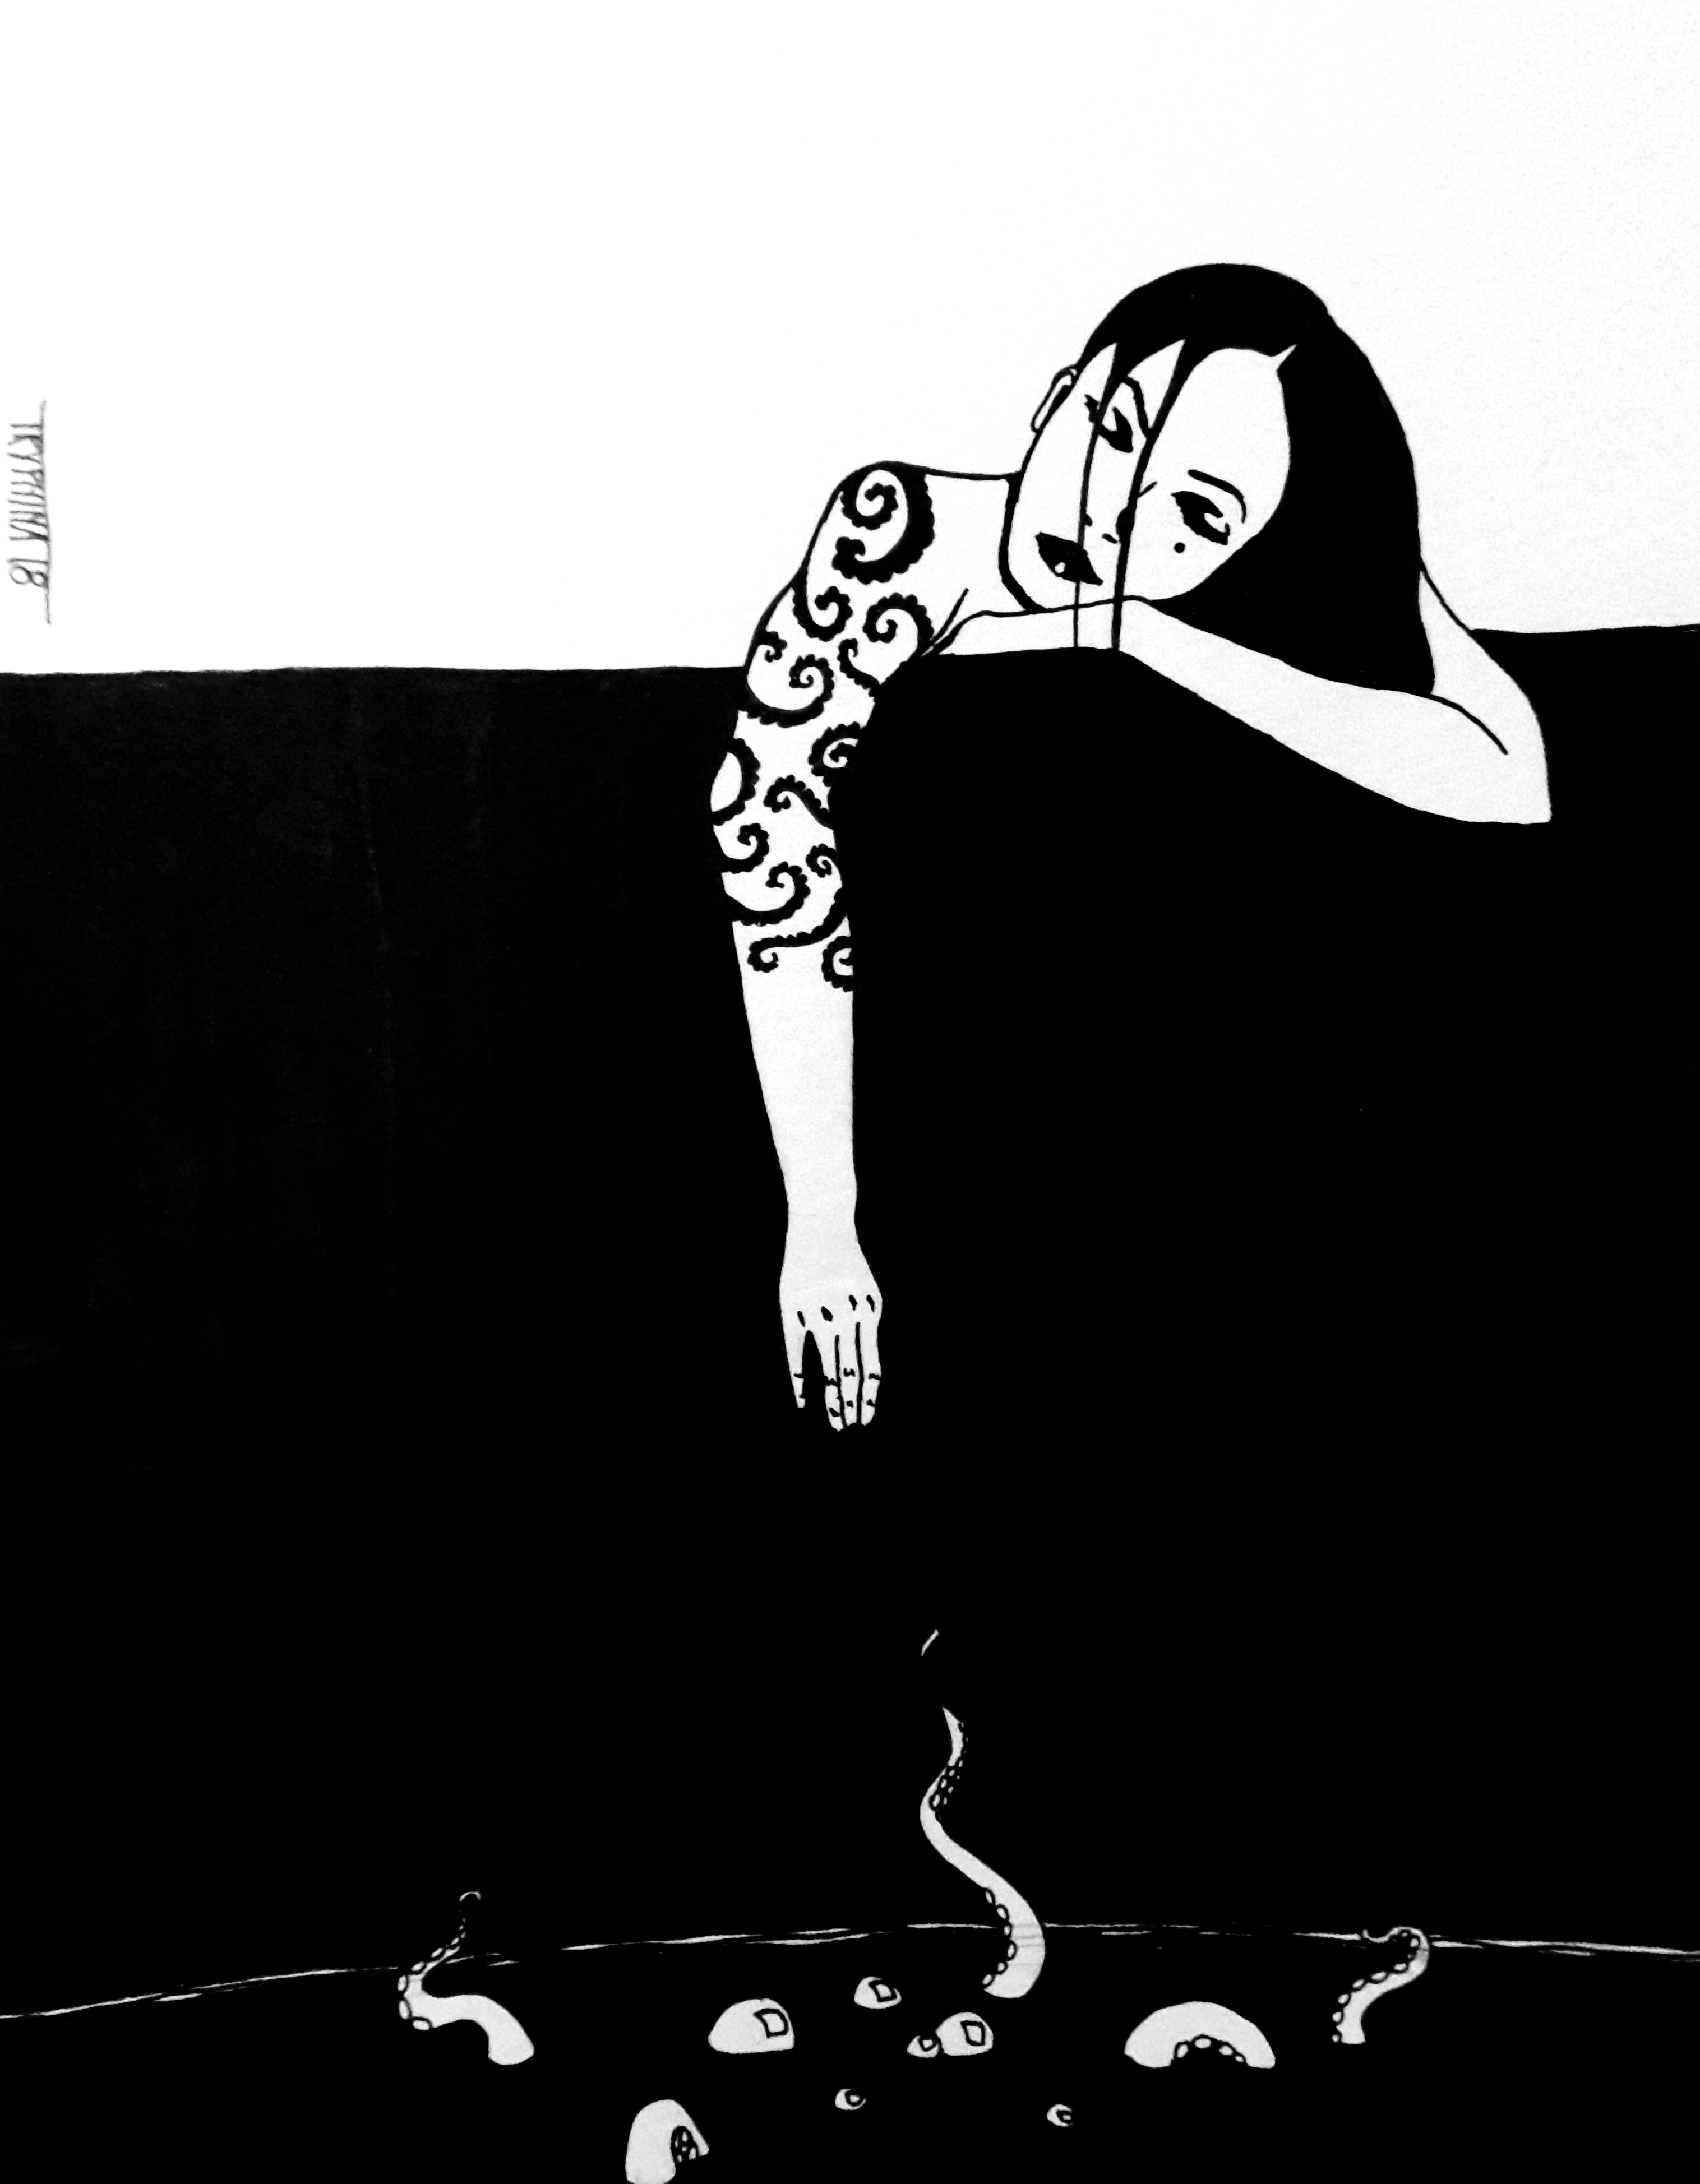 ink painting of a woman with a tentacle tattoo on her arm reaching down into the darkness, where bubbles and tentacles emerge from water.